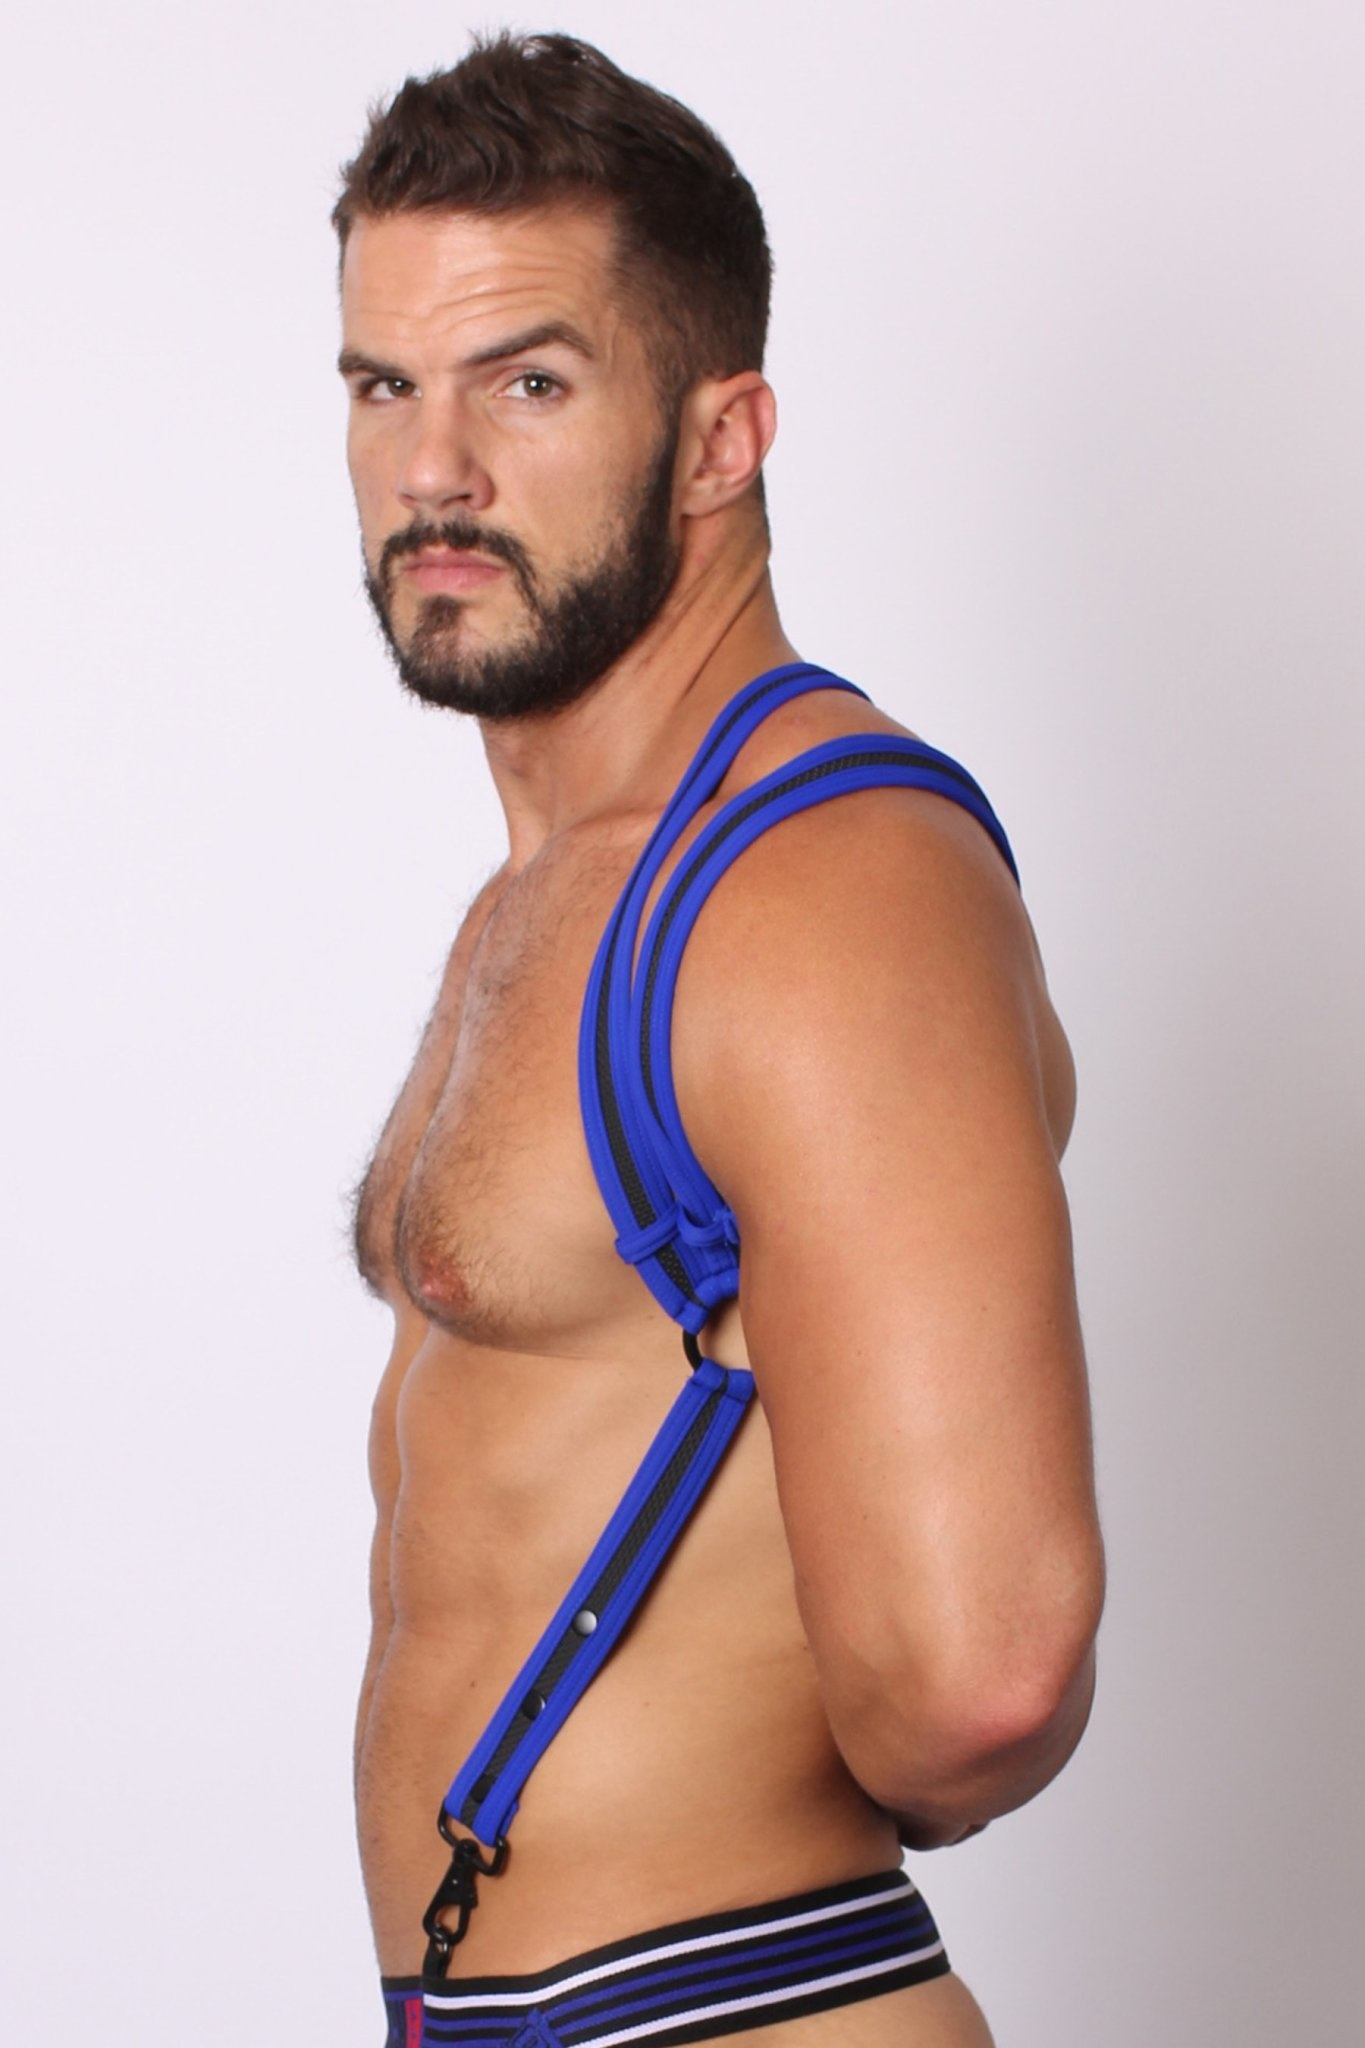 Spider Neoprene Harness